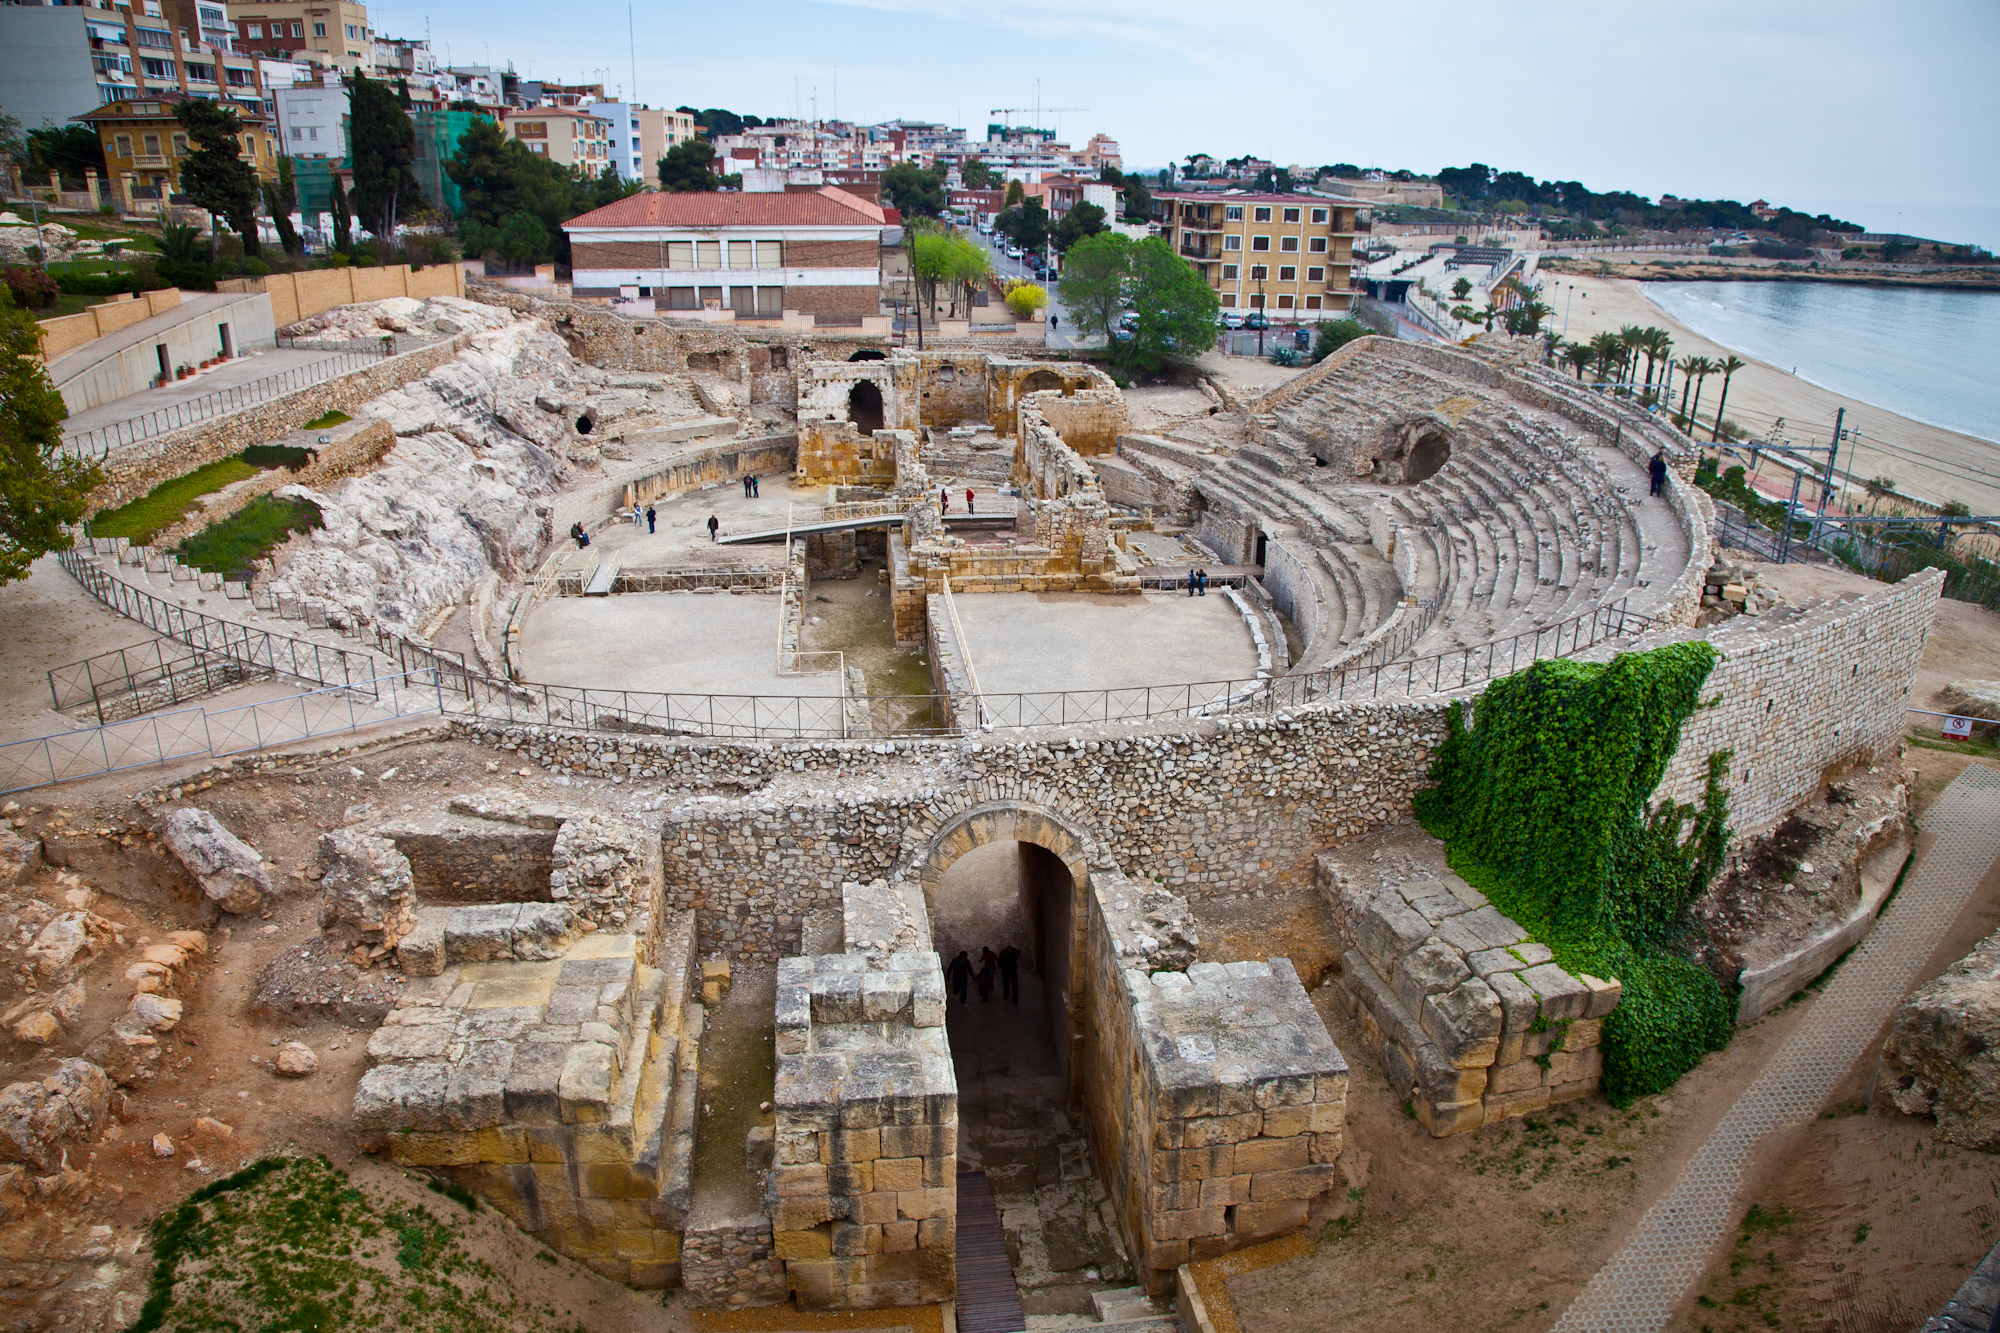 The Amfiteatre Roma in Taragona Spain... the ruins are about 2000 years old.